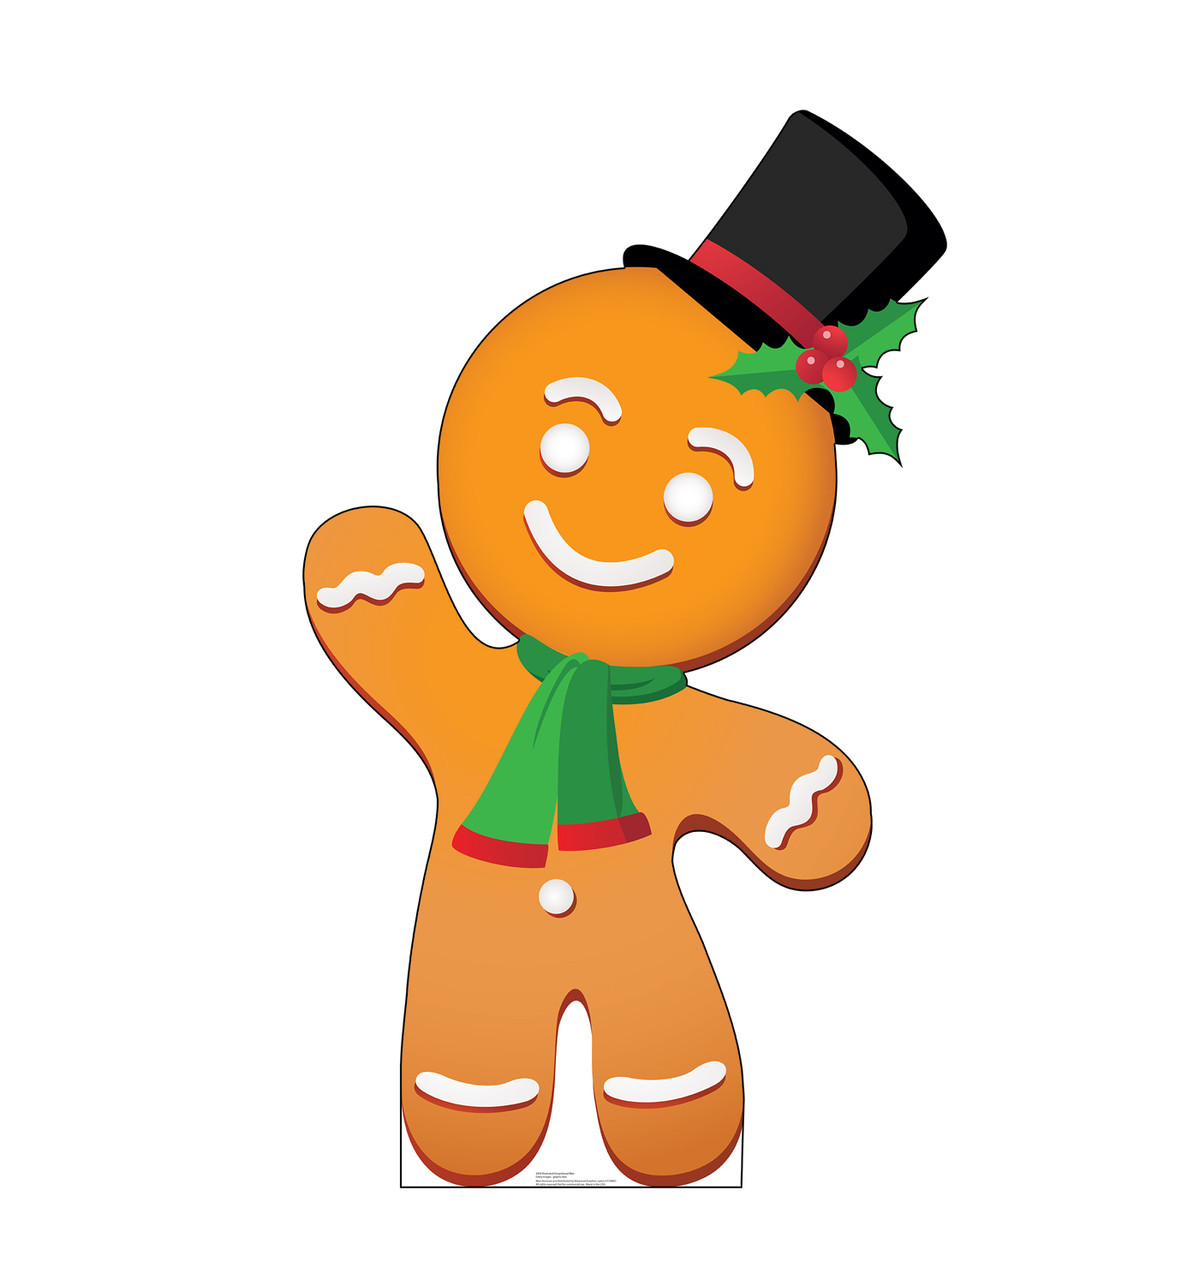 Life-size cardboard standee of Illustrated Gingerbread Man.